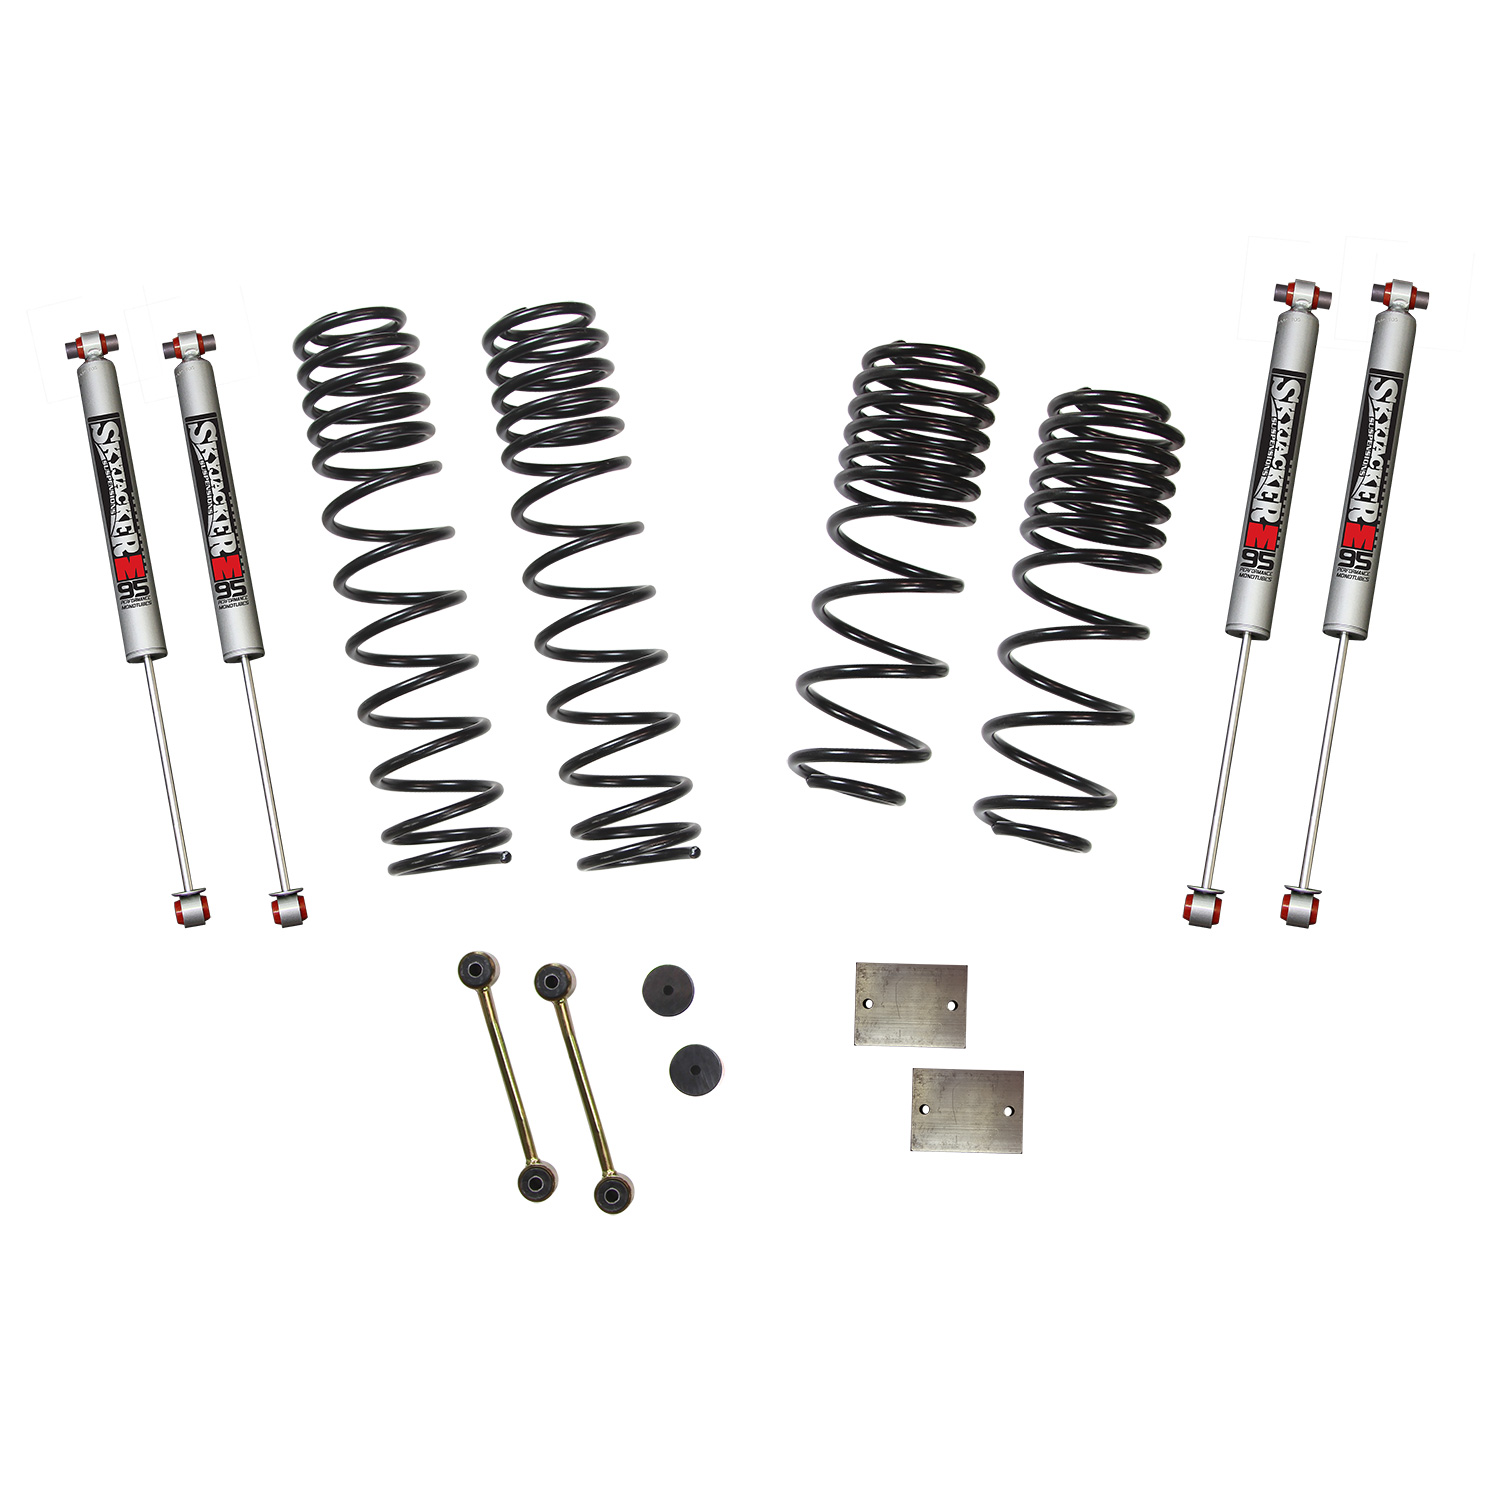 Jeep Jlsel 1 5 Inch Dual Rate Long Travel Suspension